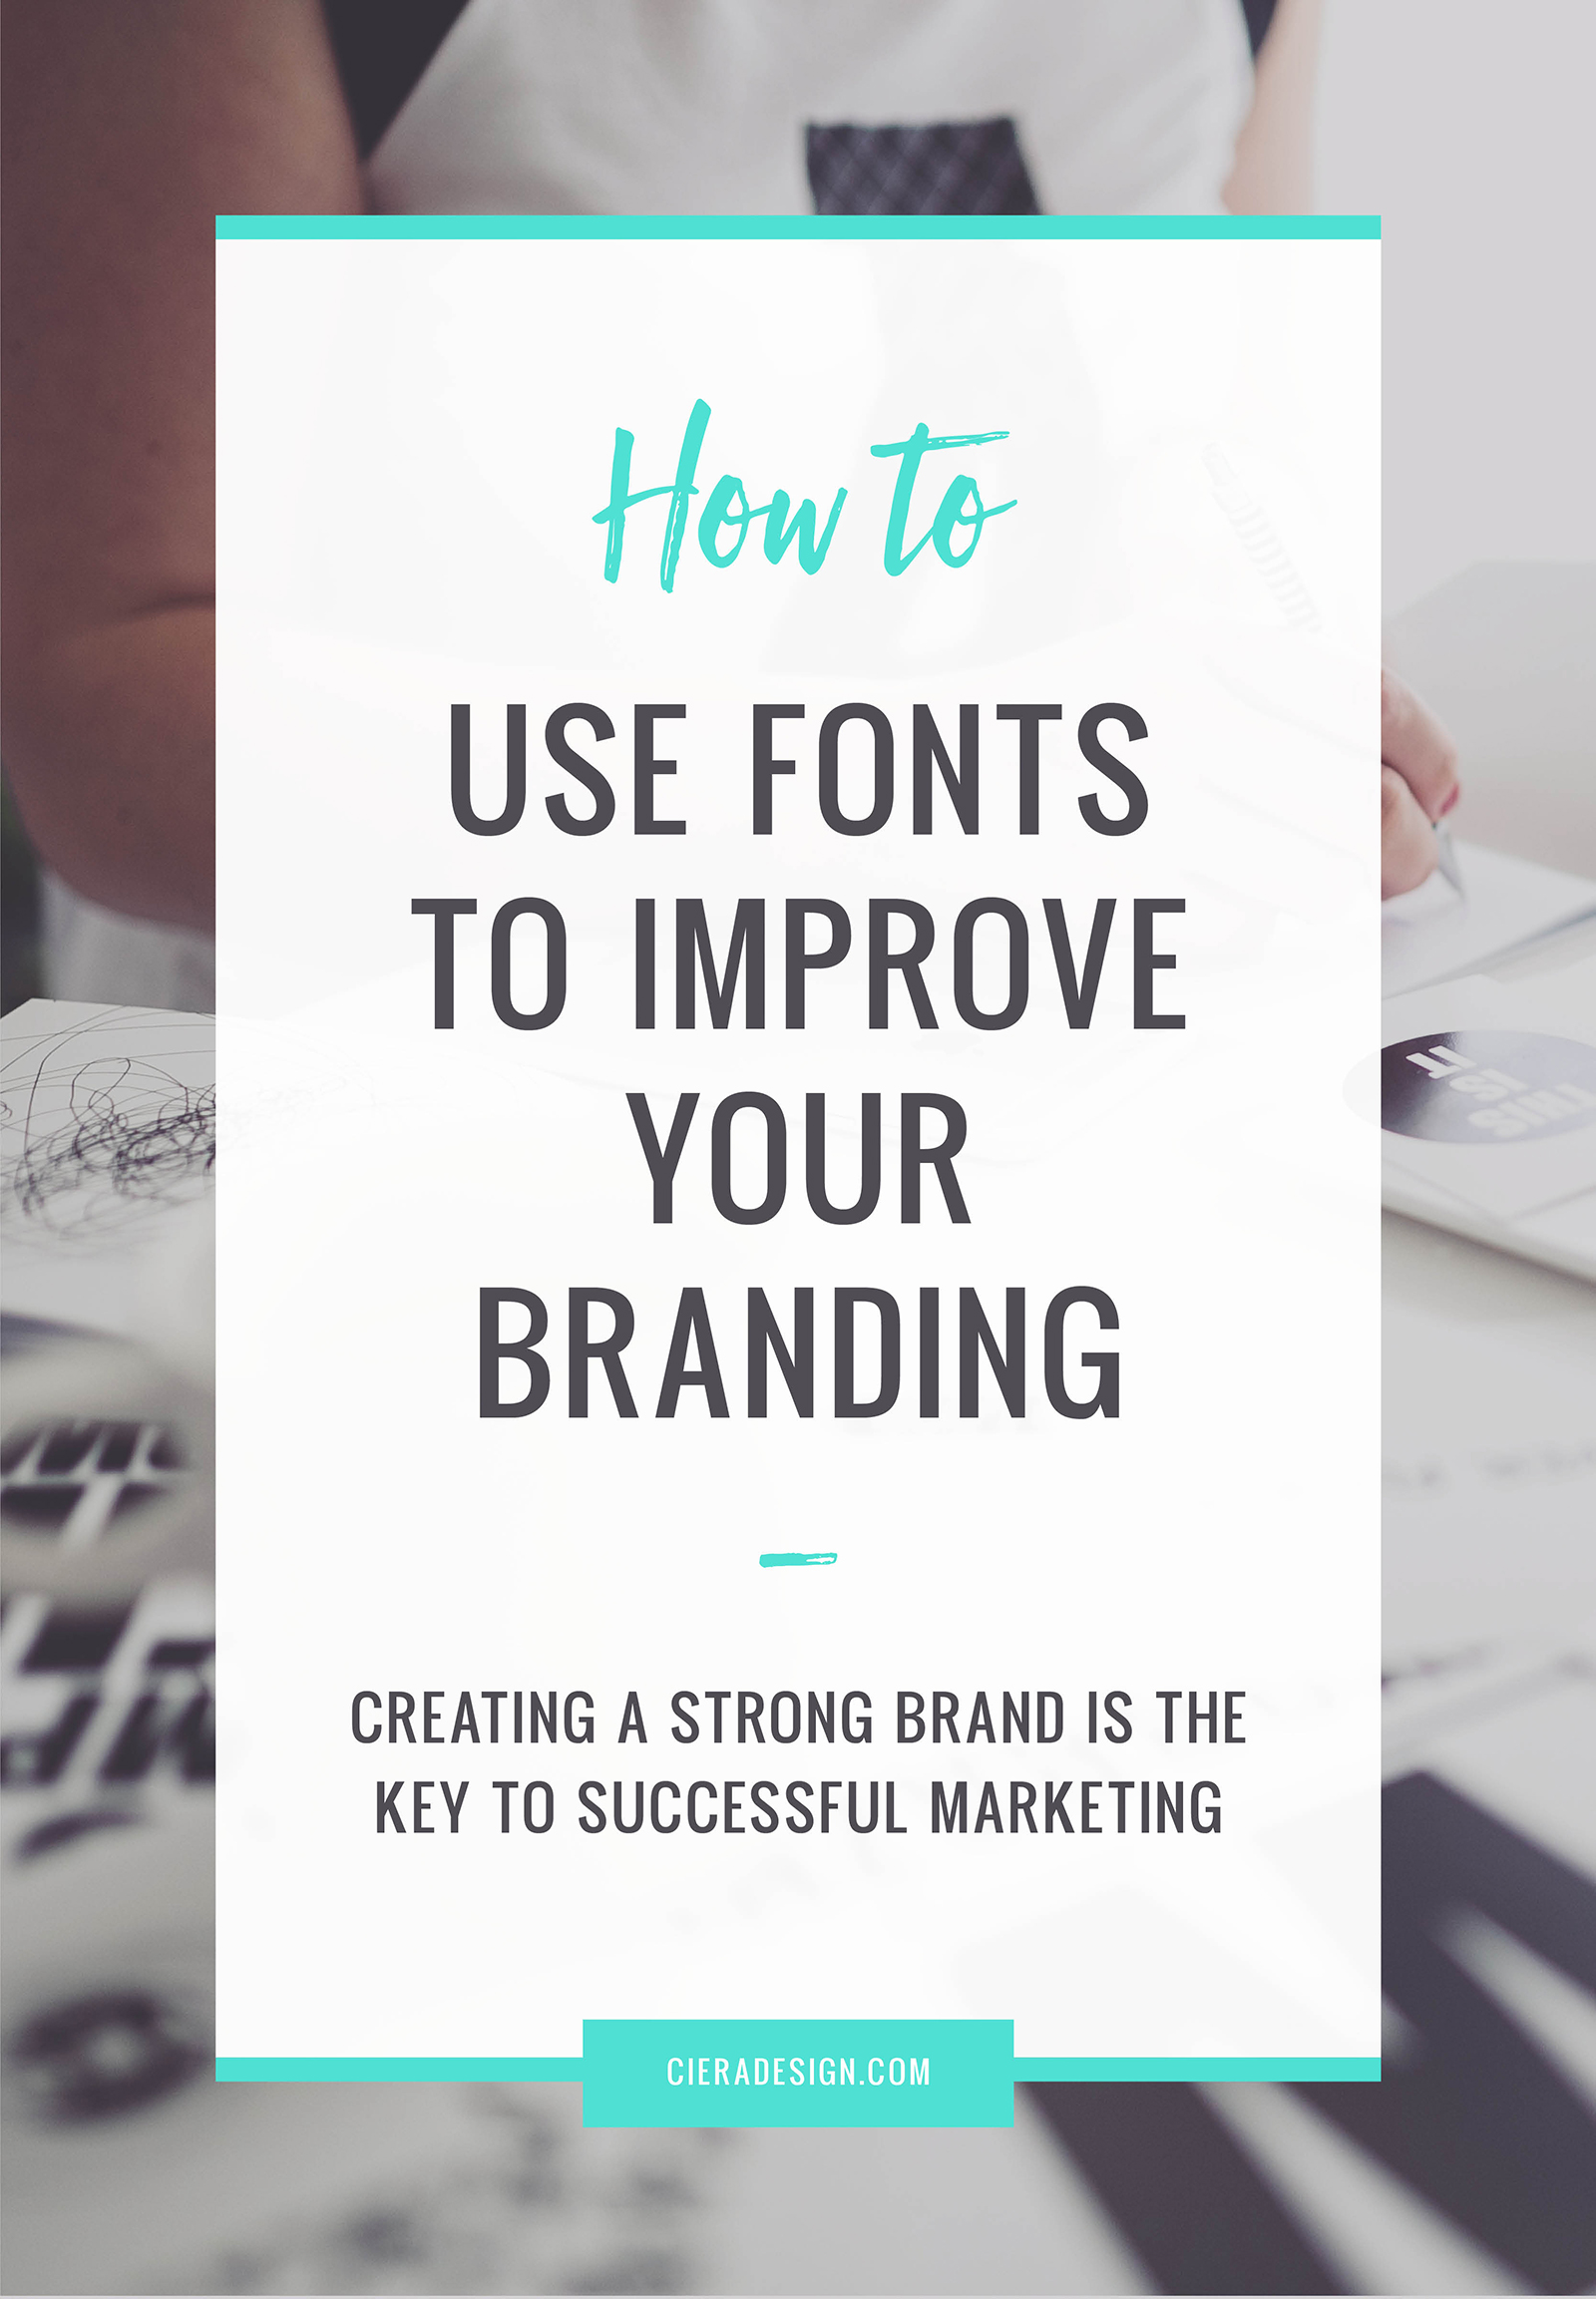 How To Use Fonts To Improve Your Branding